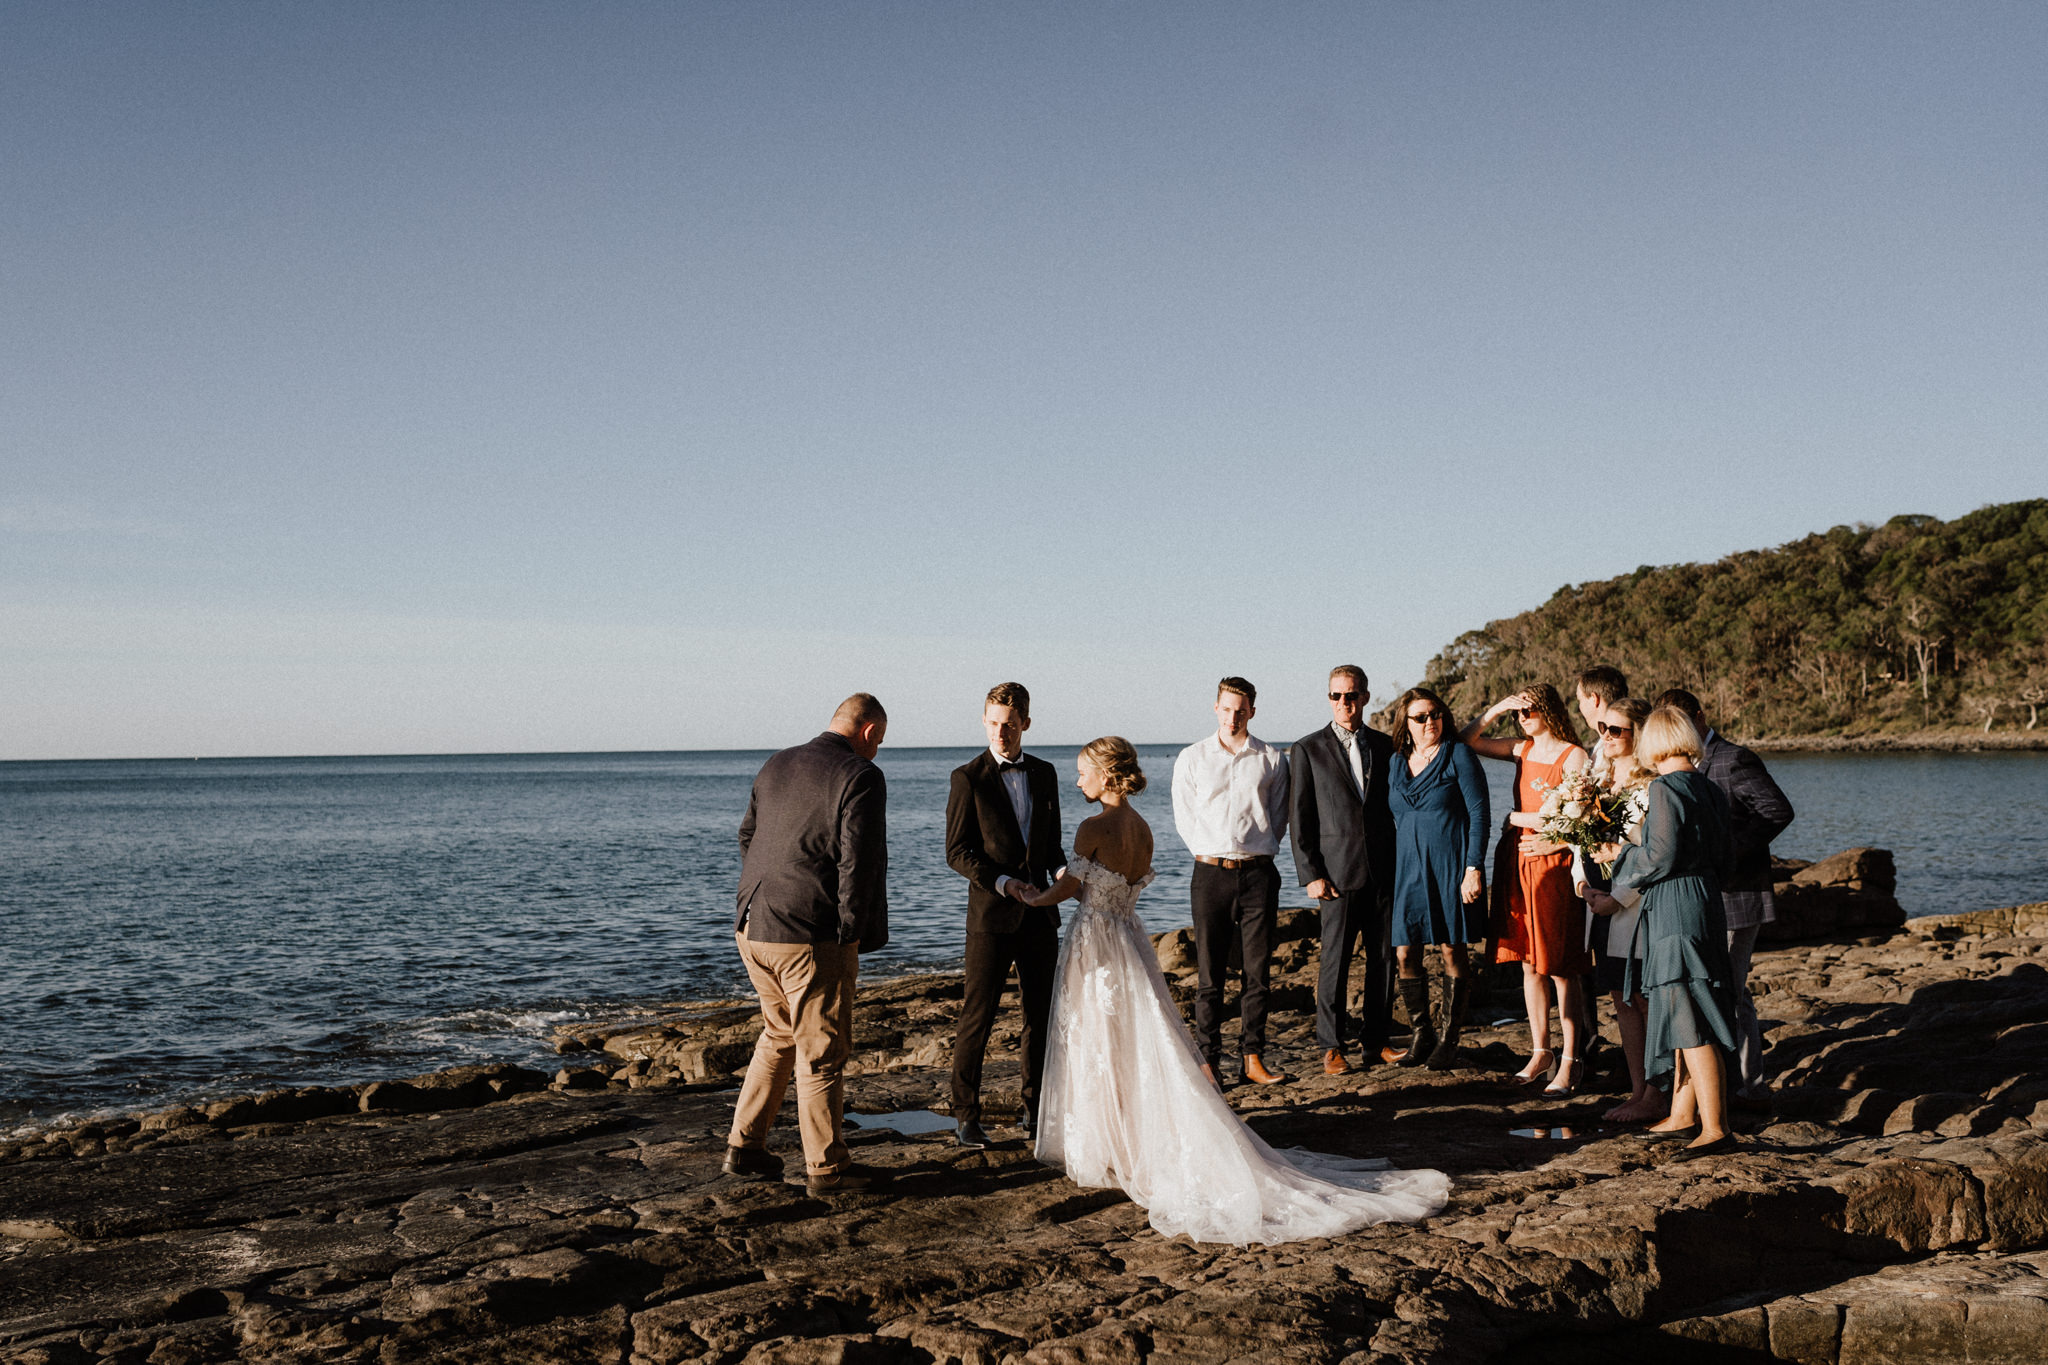 Noosa Byron Bay Elopement Wedding-12.jpg